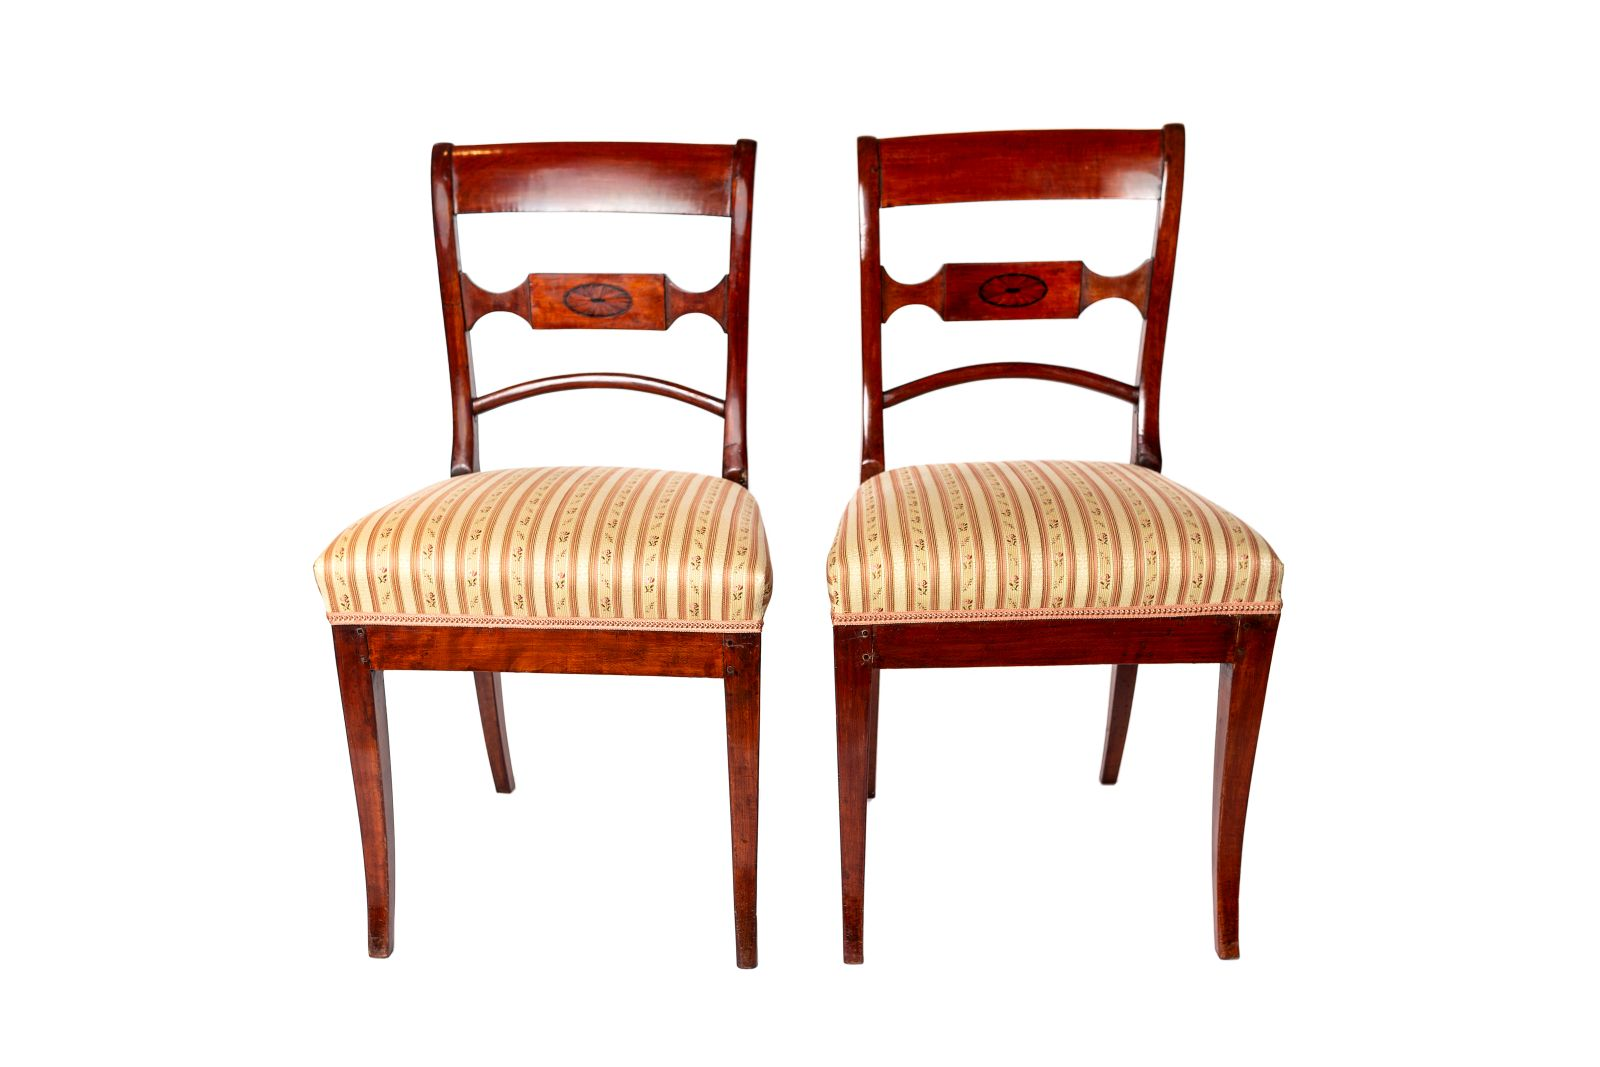 #15 Two Biedermeier chairs | Biedermeierstühle Image